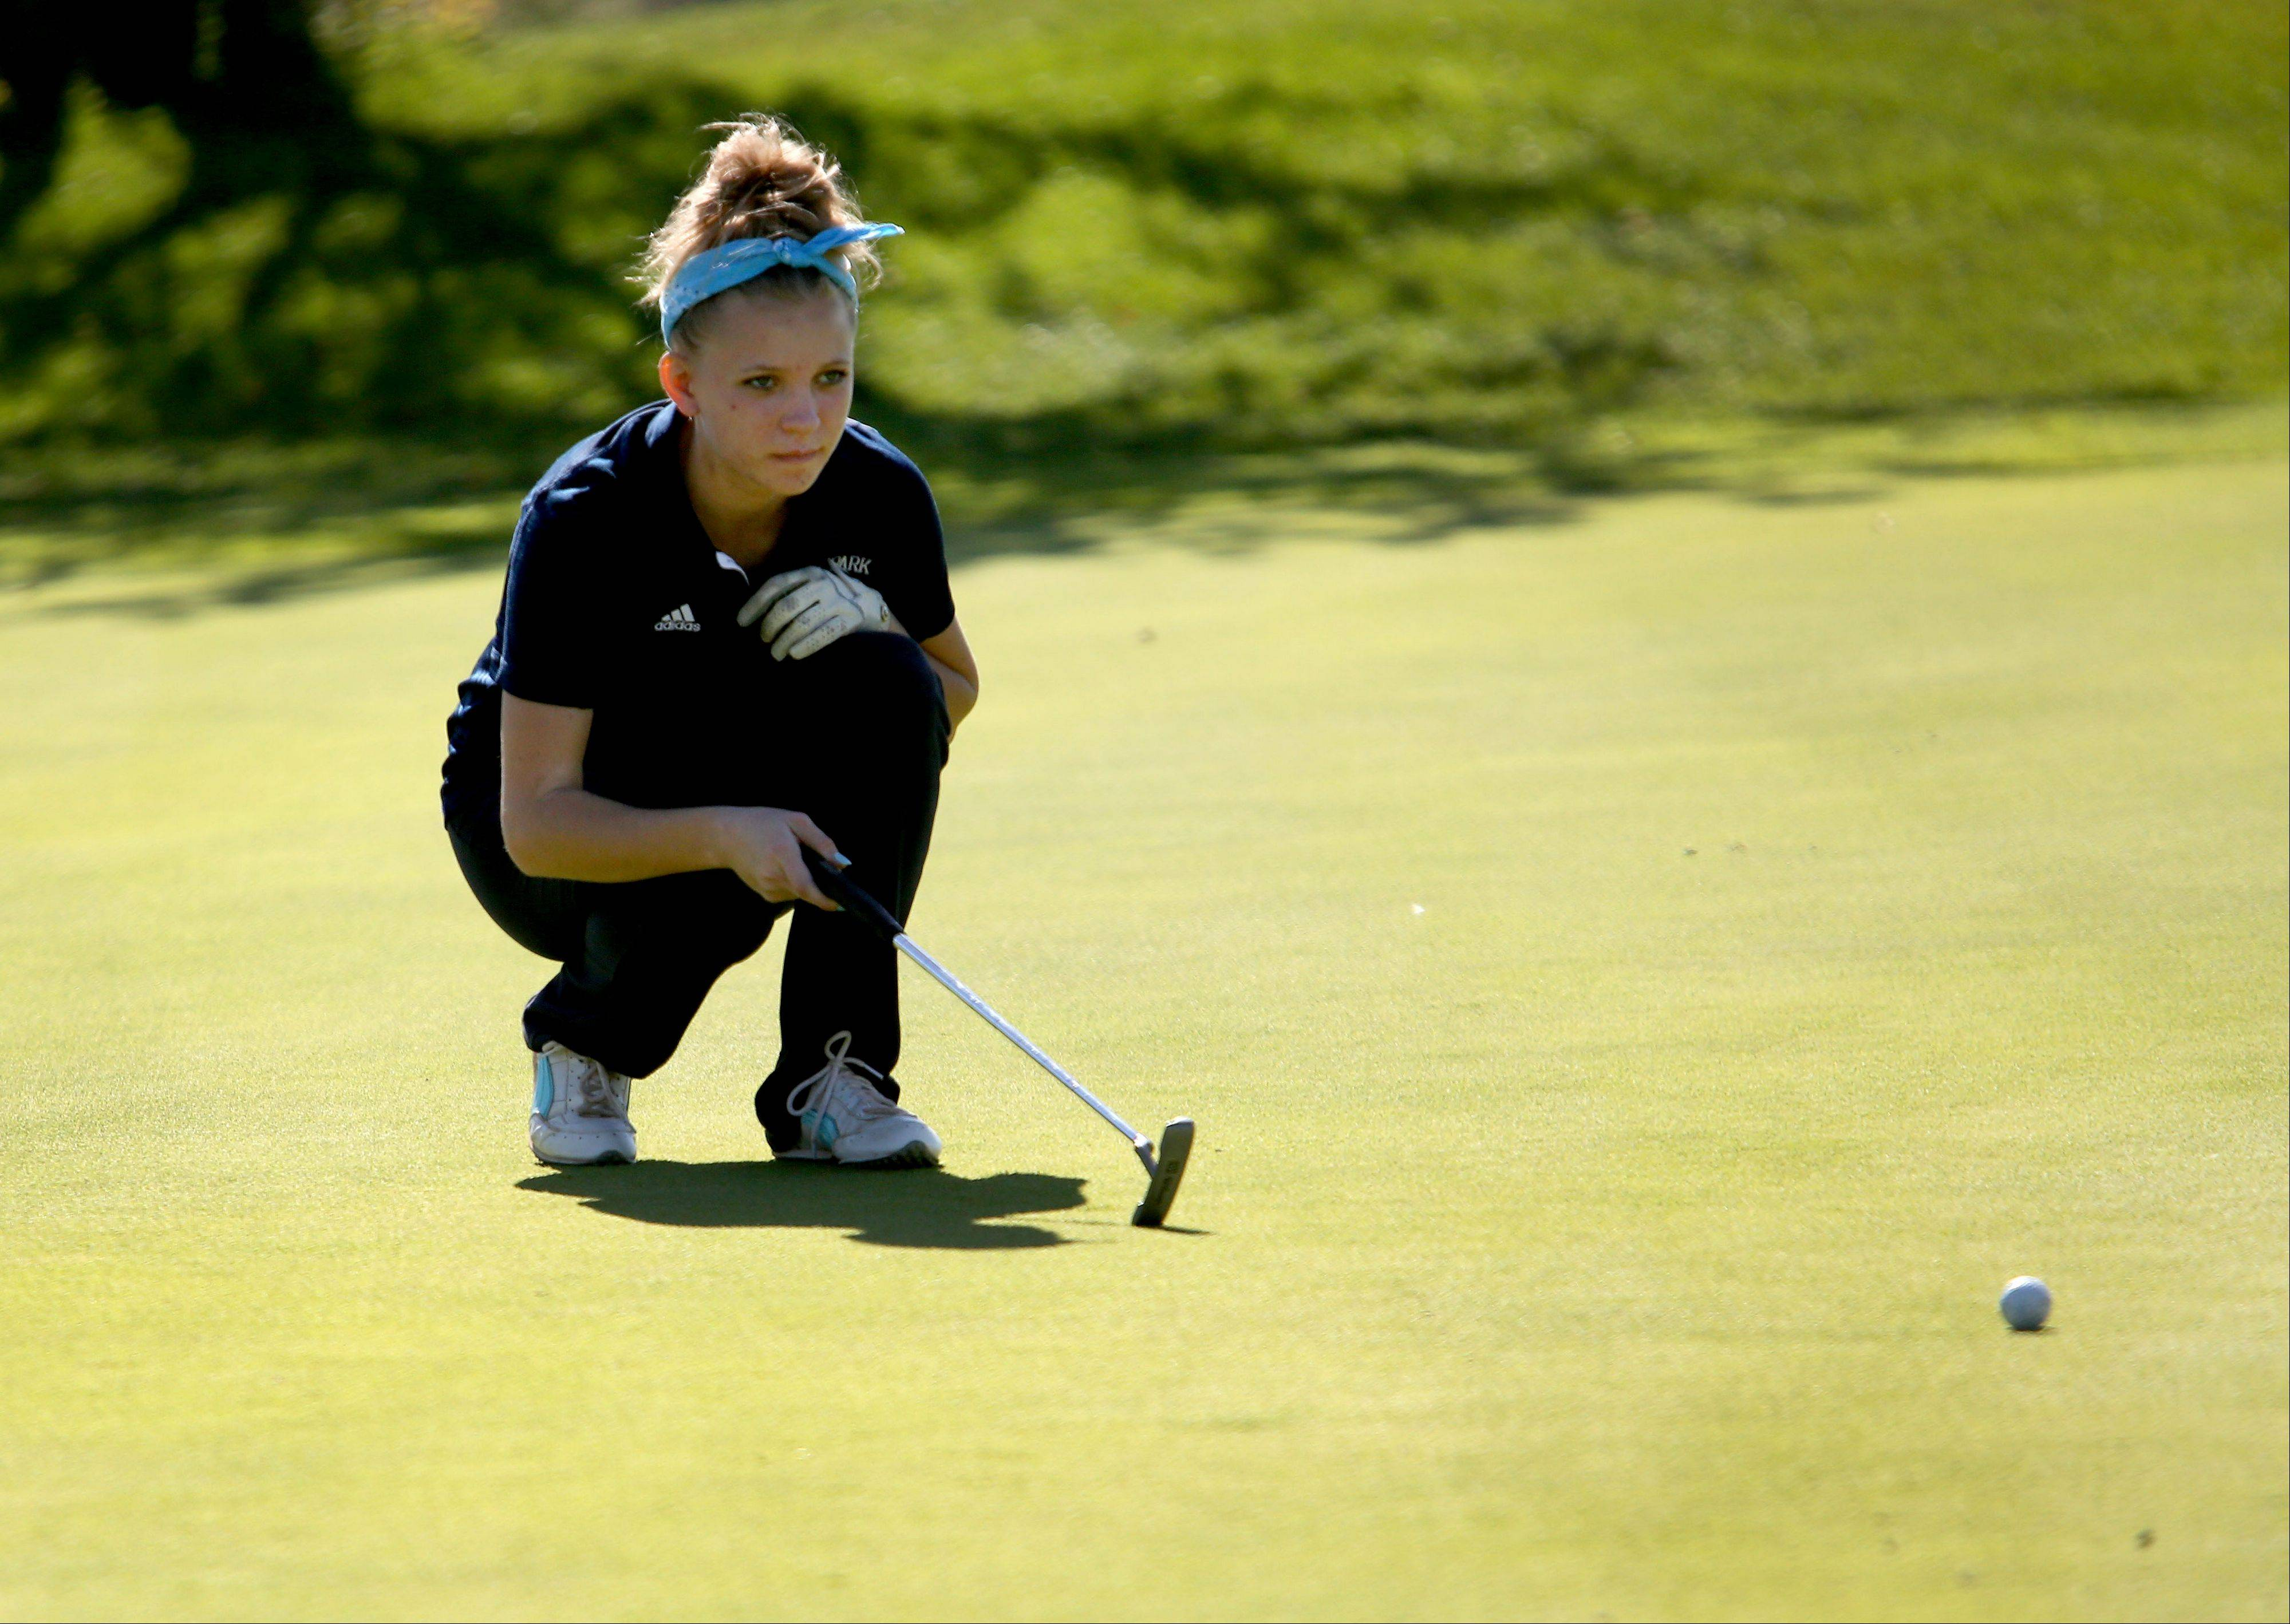 Madison McCallister of Lake Park lines up a putt on the first green during Class AA Glenbard East regional girls golf at Glendale Lakes Golf Course in Glendale Heights on Wednesday.